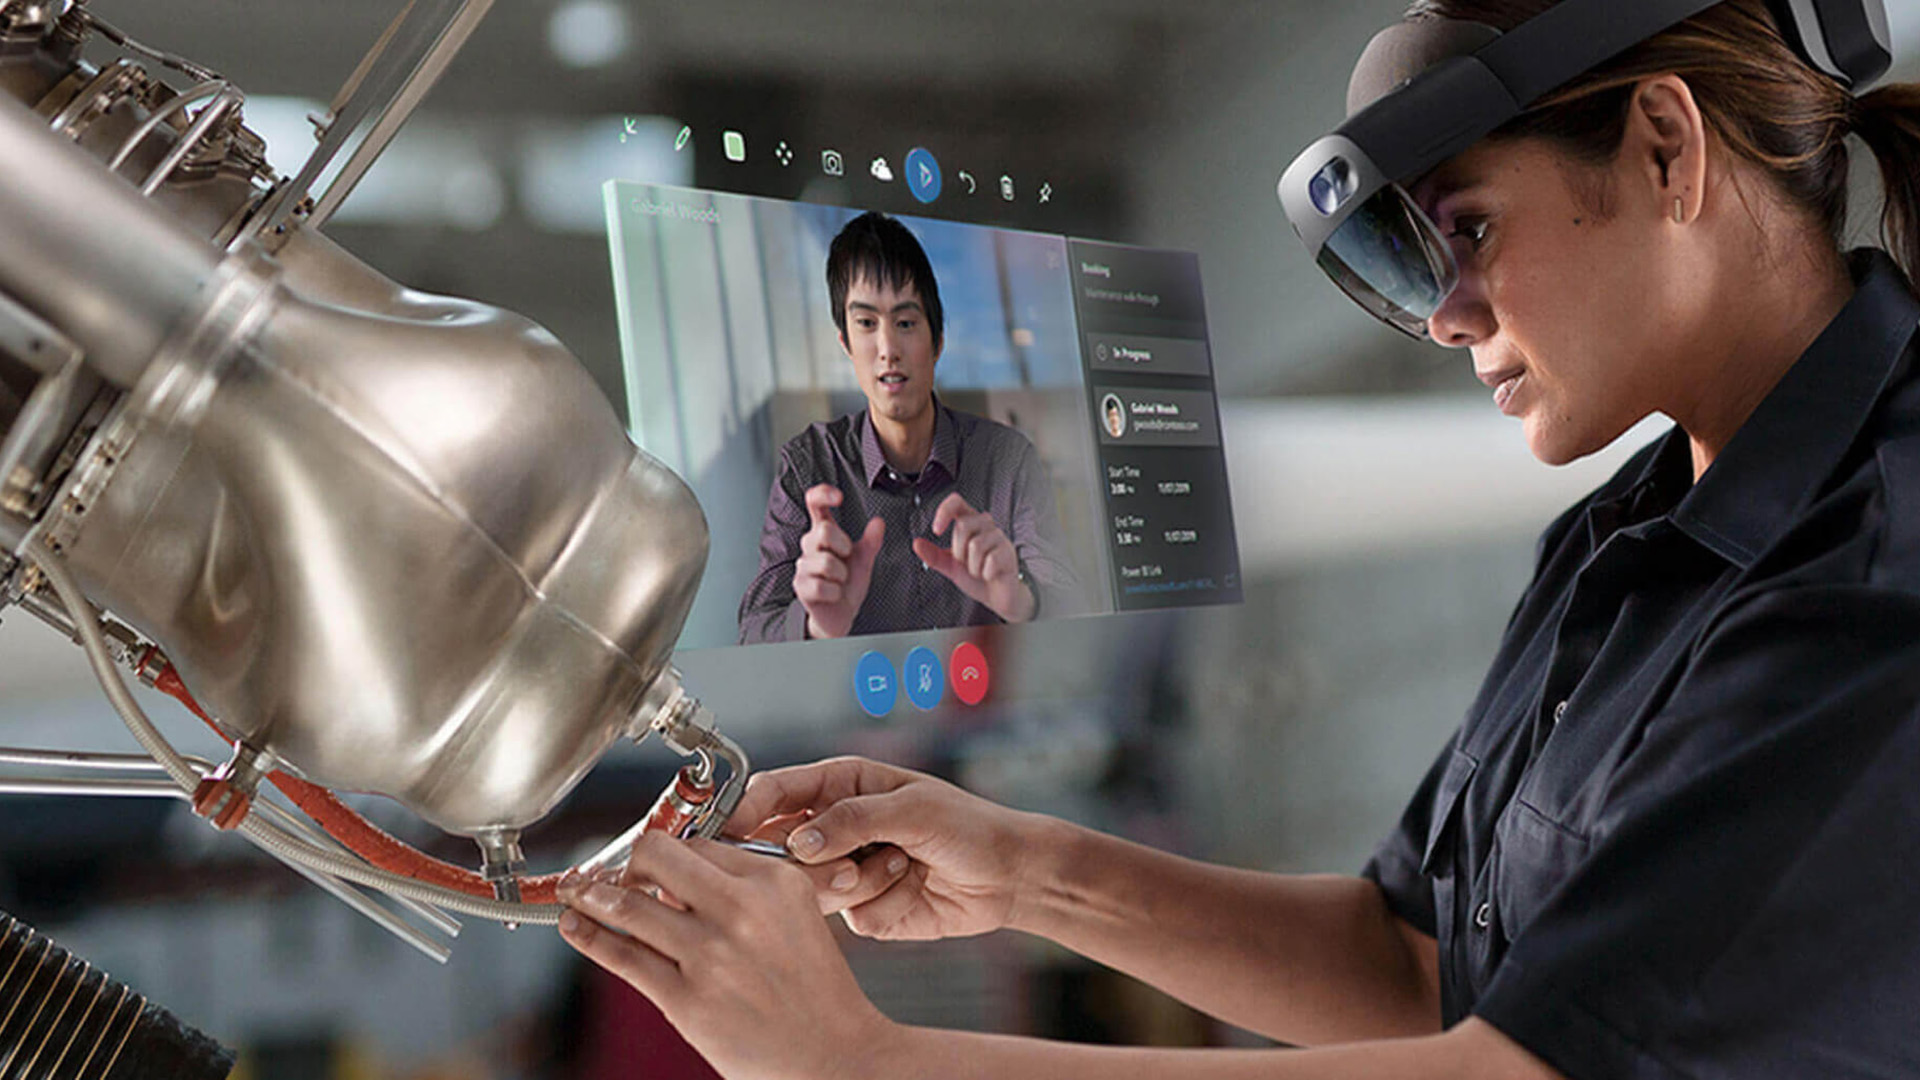 engineer using microsoft hololens for virtual training through remote assist